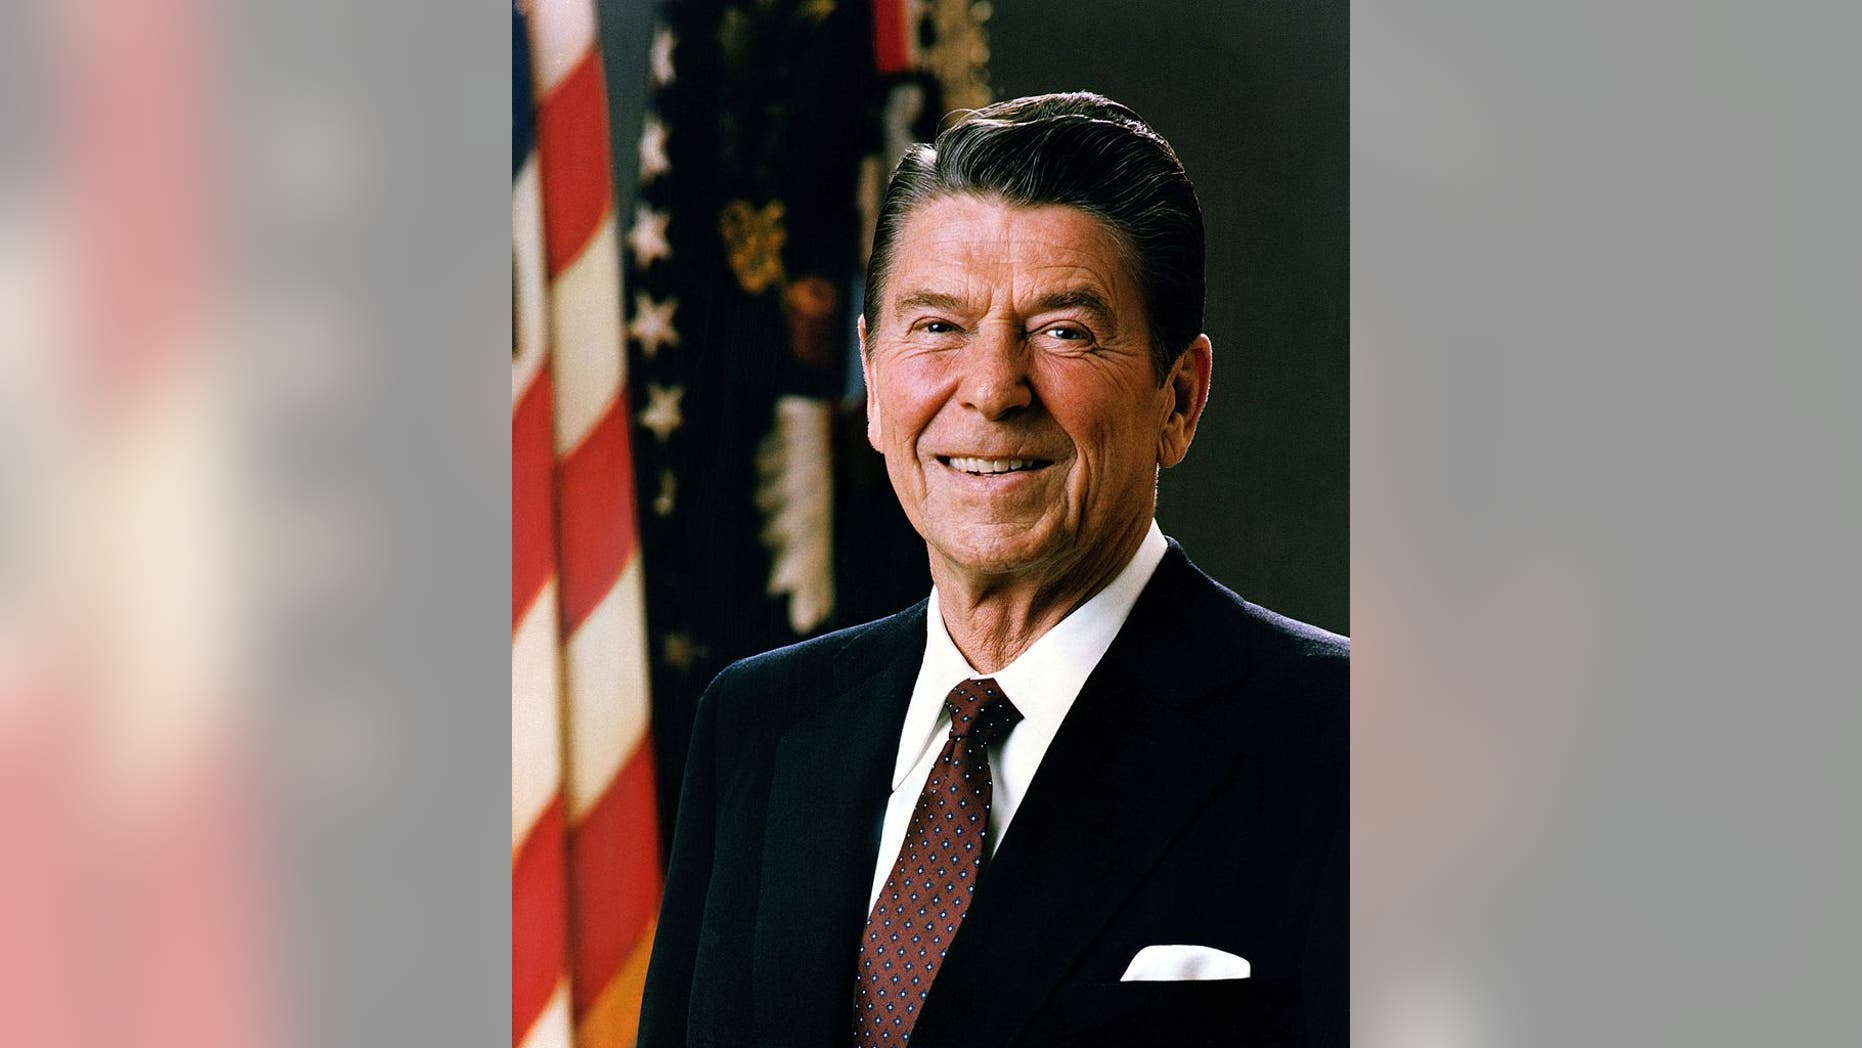 President Ronald Reagan received a letter from the Marine Corps asking him if he would like to enlist in 1984.